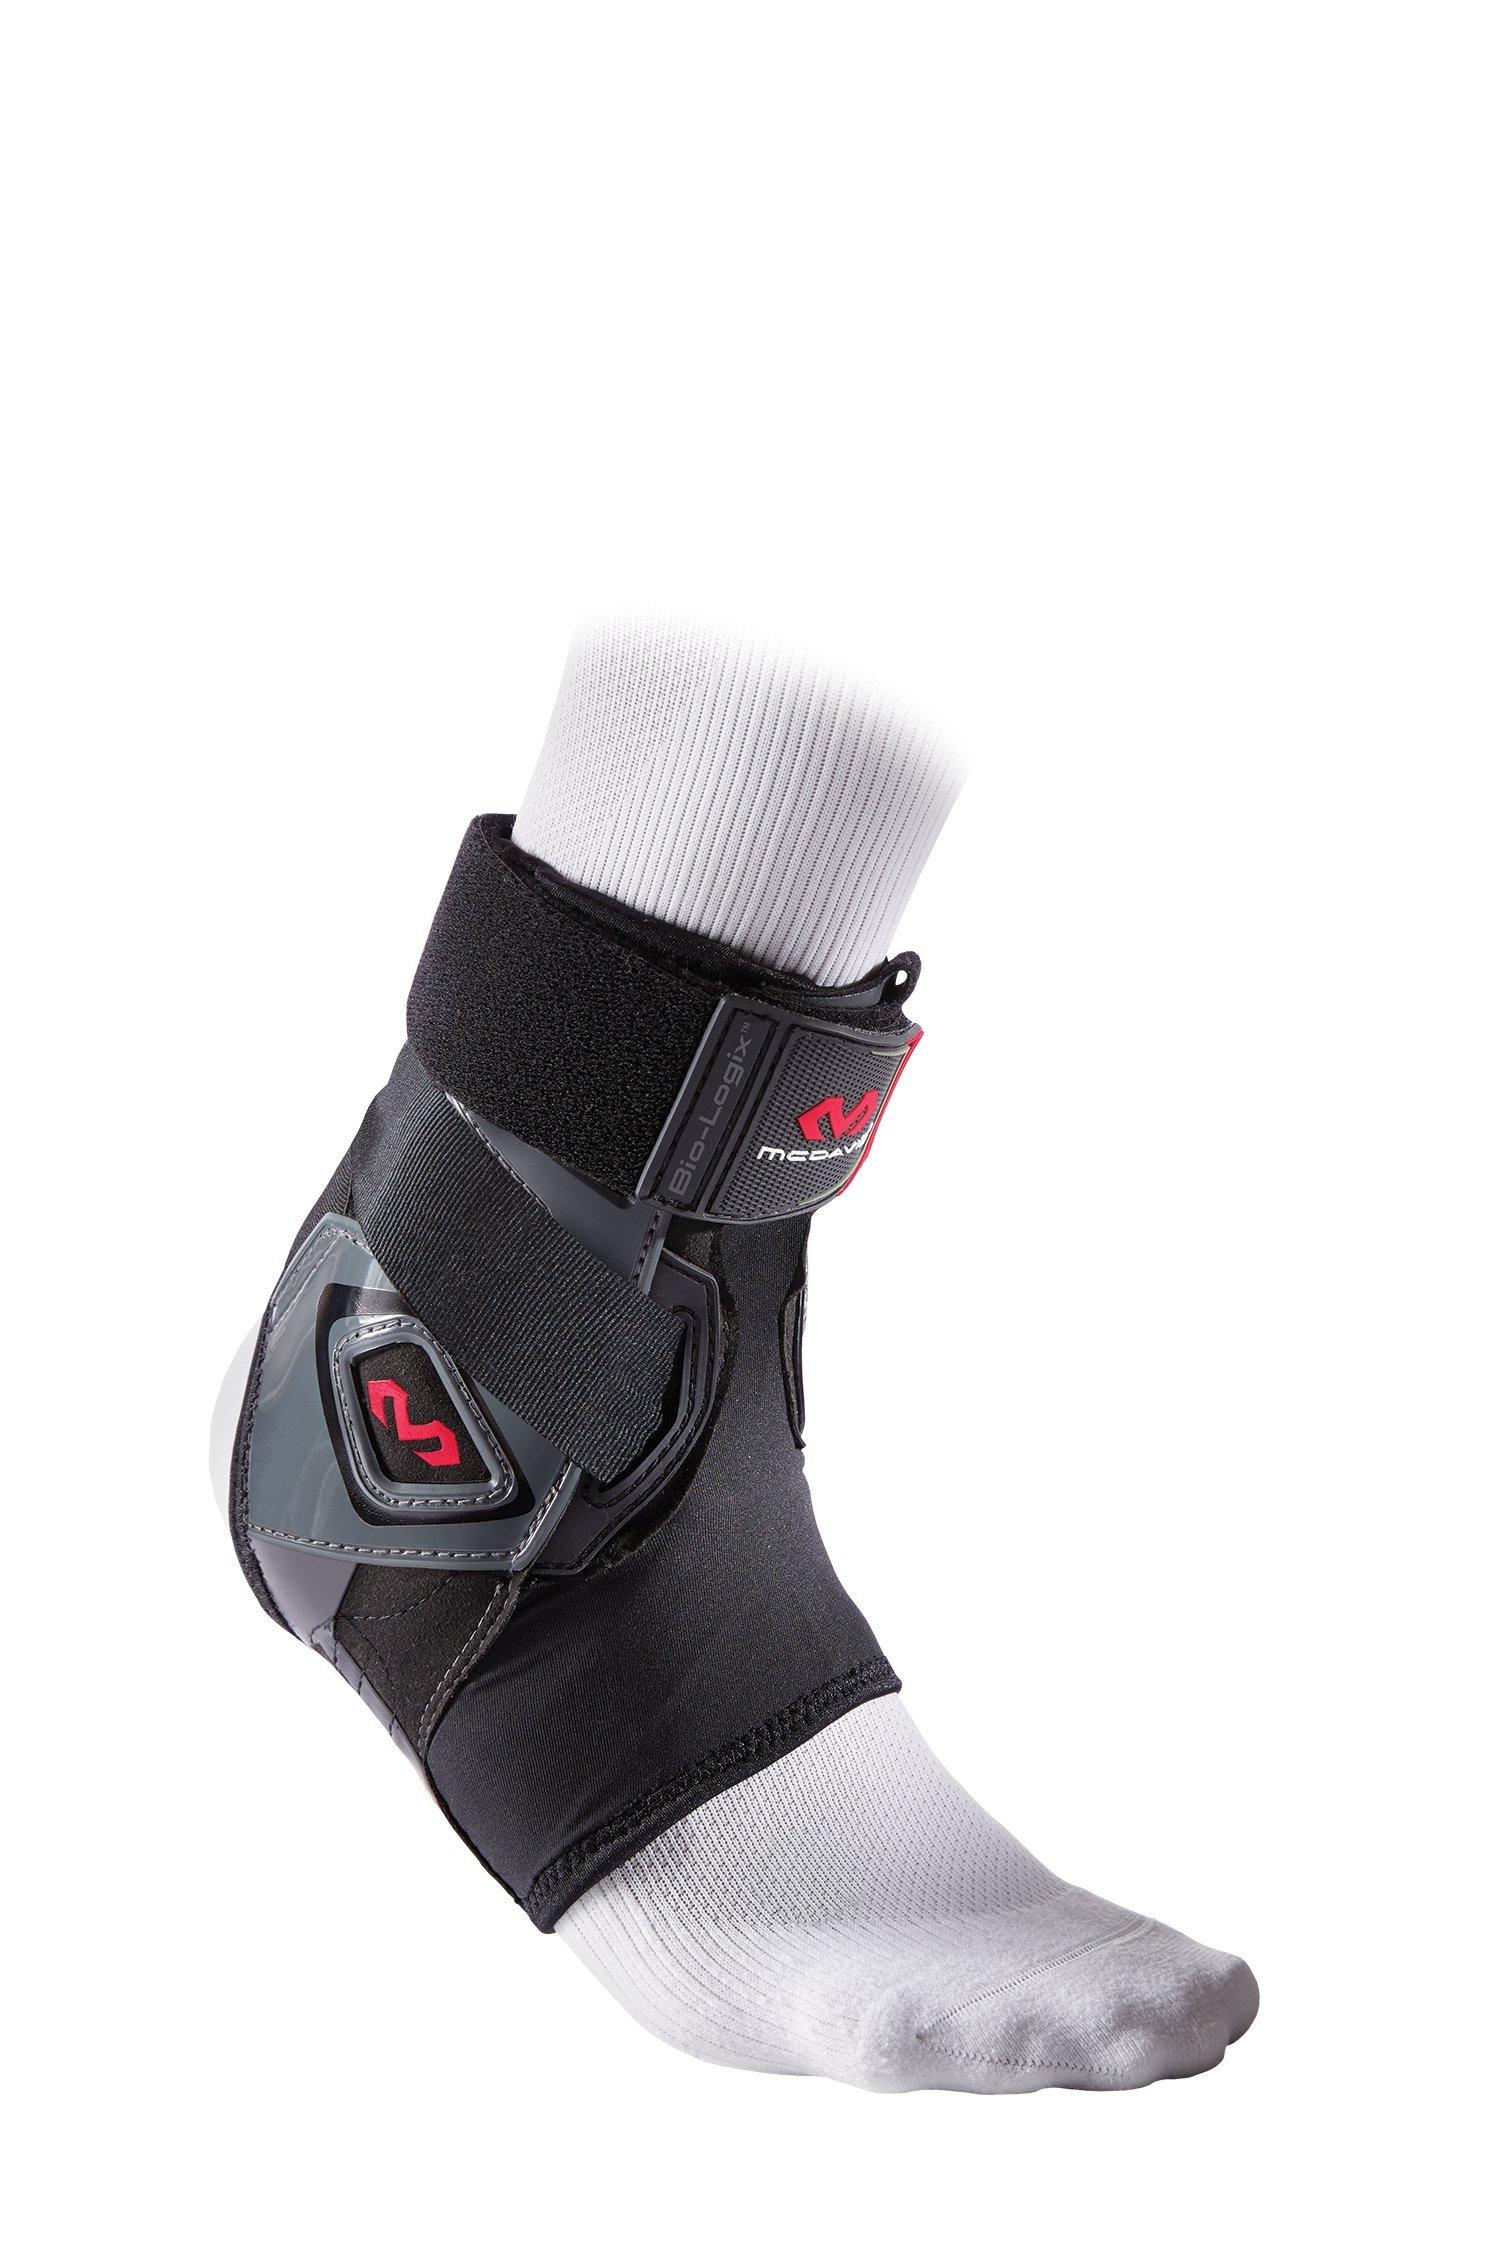 McDavid Bio-Logix Ankle Brace, Black, Medium/Large, Left